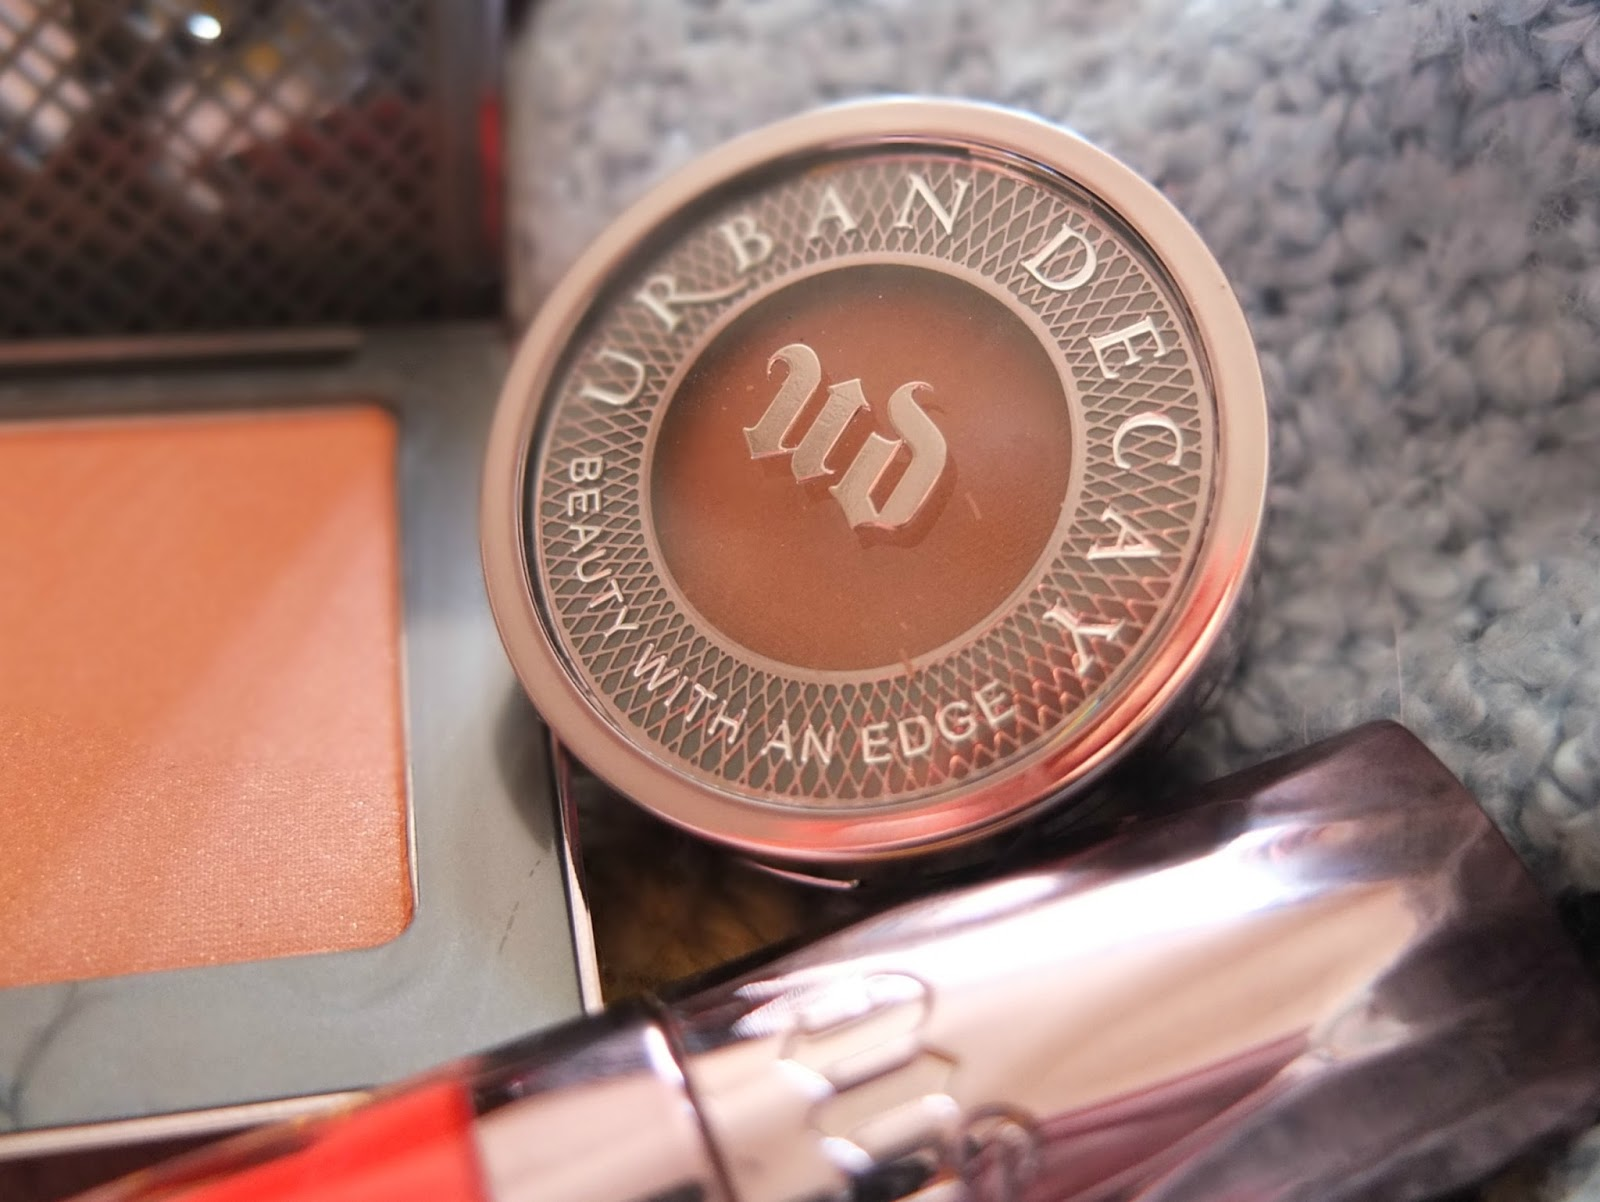 Burnt Orange Make up look with Urban Decay cosmetics on Hello Terri Lowe, UK Beauty Blog.